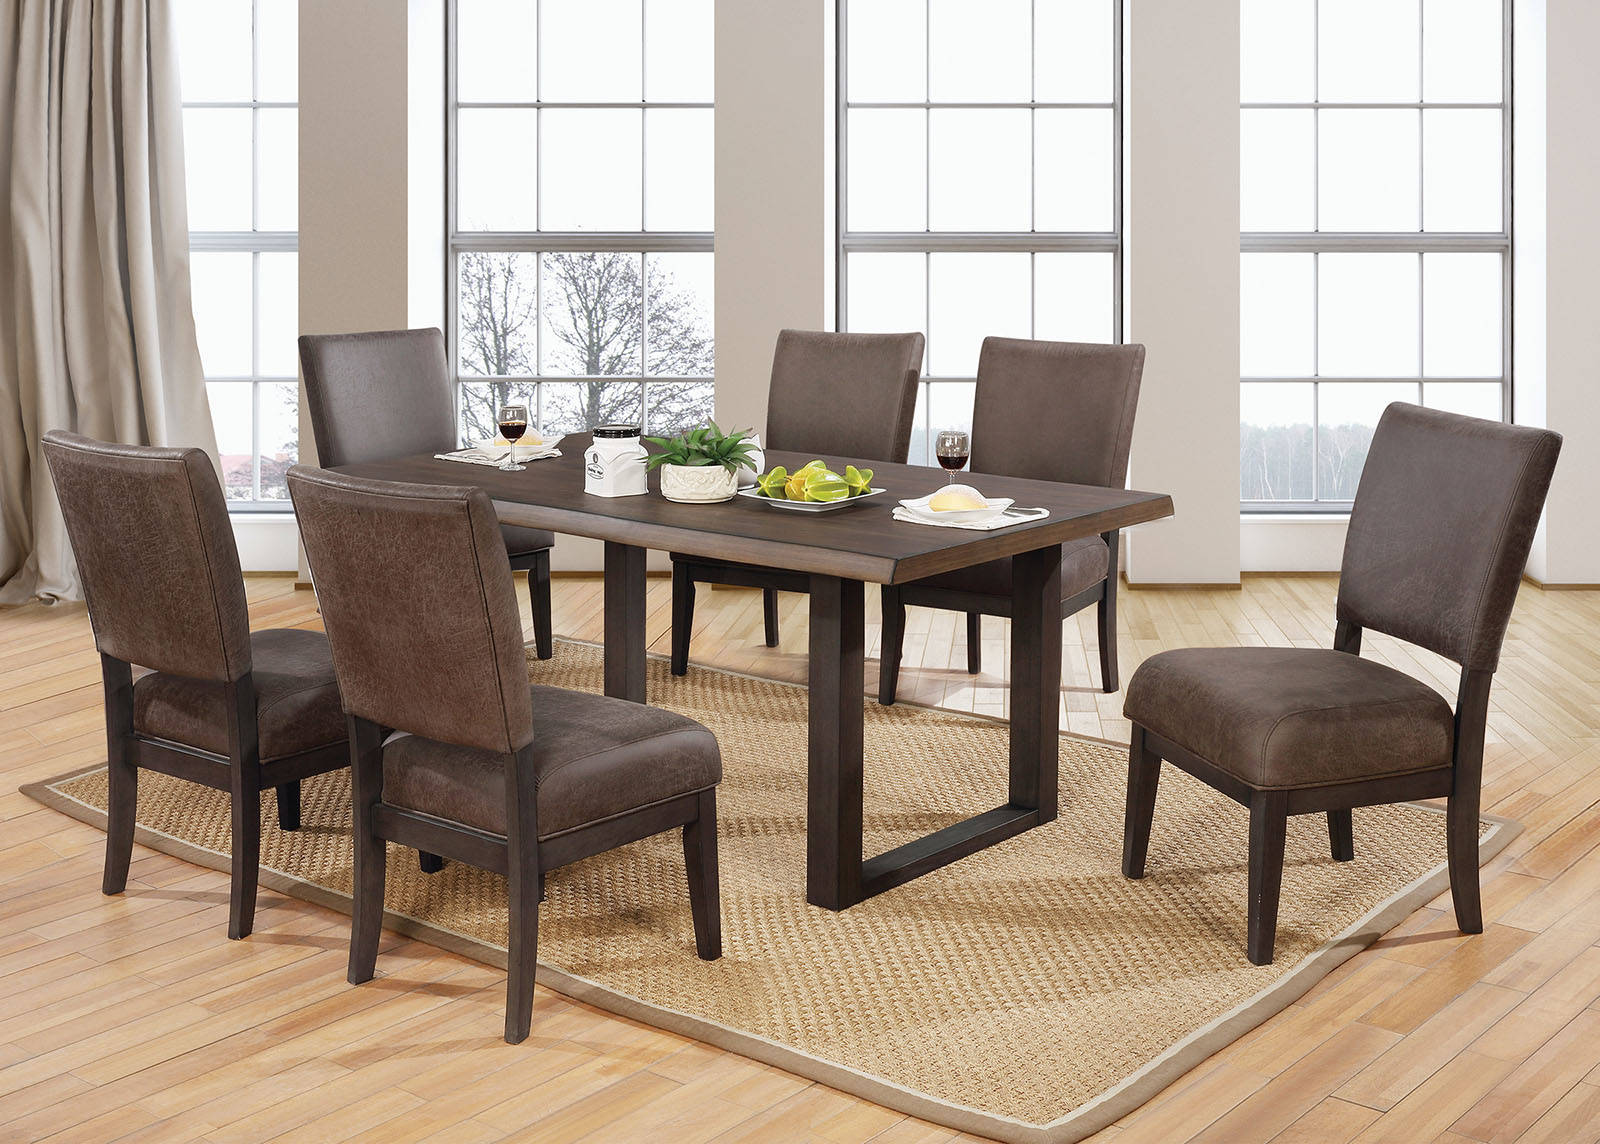 Furniture of America Tolstoy Espresso 7pc Dining Room Set